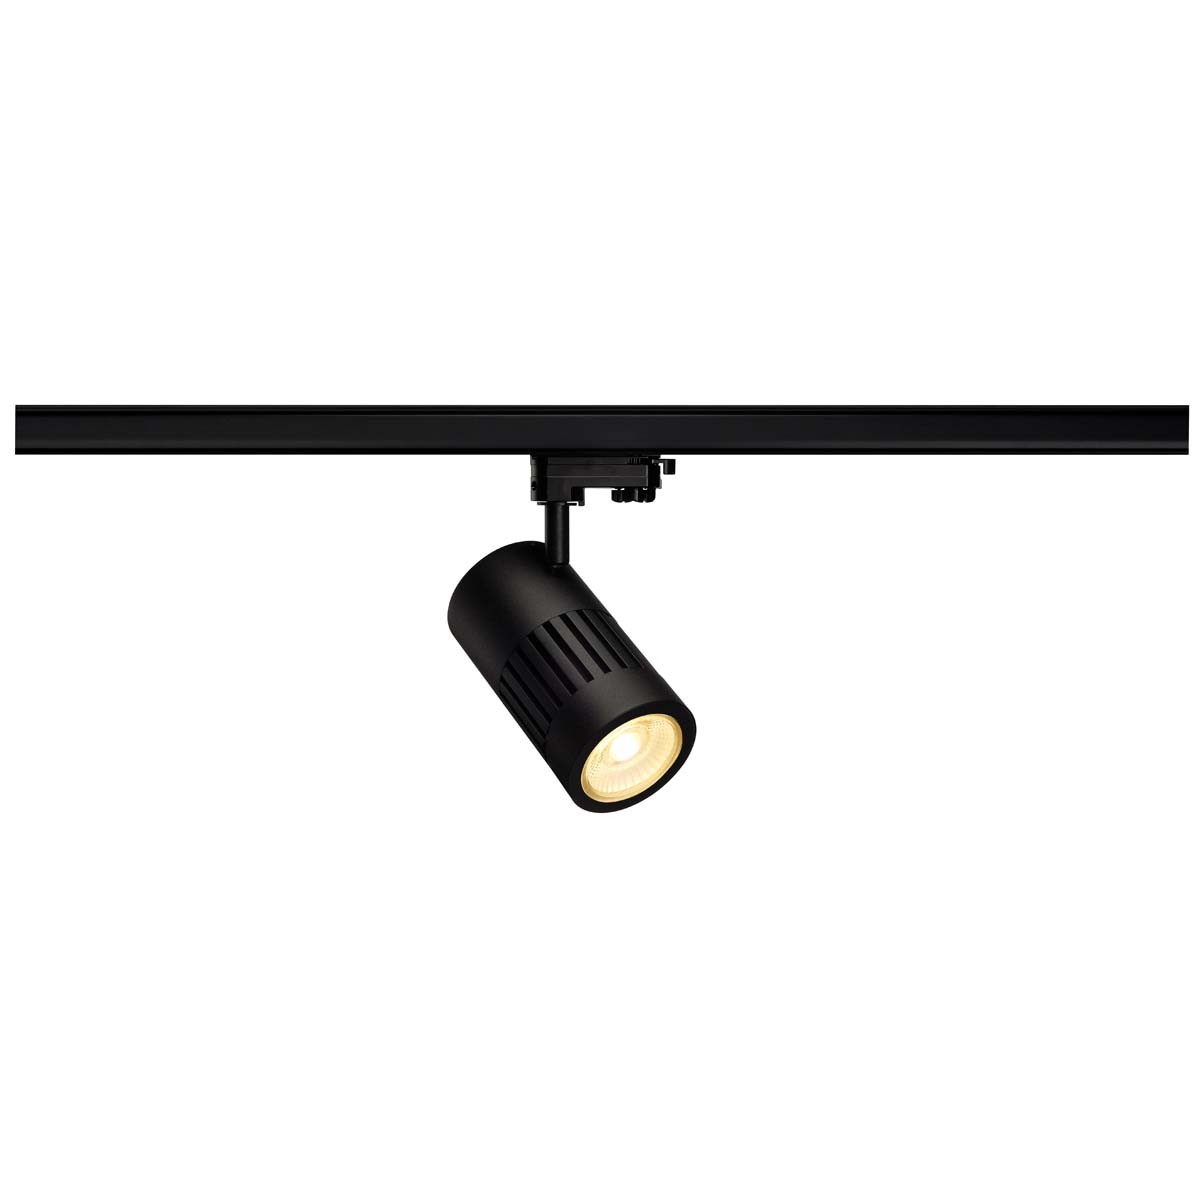 SLV 176080 STRUCTEC LED 30W, round, black, rich colour, 36° incl. 3-phase Adapter